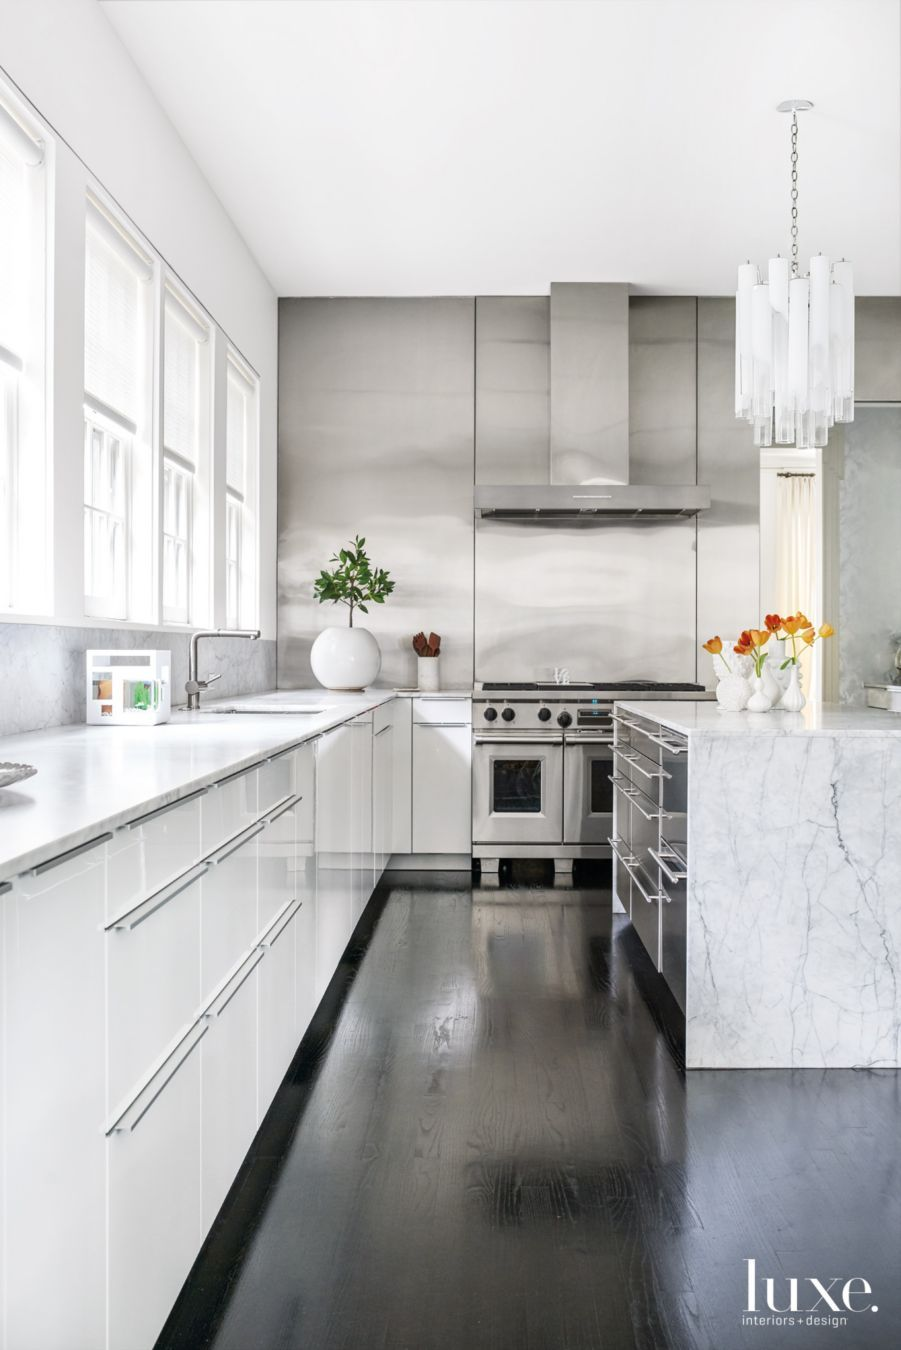 High Polish White Poggenpohl Cabinetry With Appliances From K Amp N Sales Carrara Marble Countertops By T White Modern Kitchen Modern Black Kitchen Oak Floors